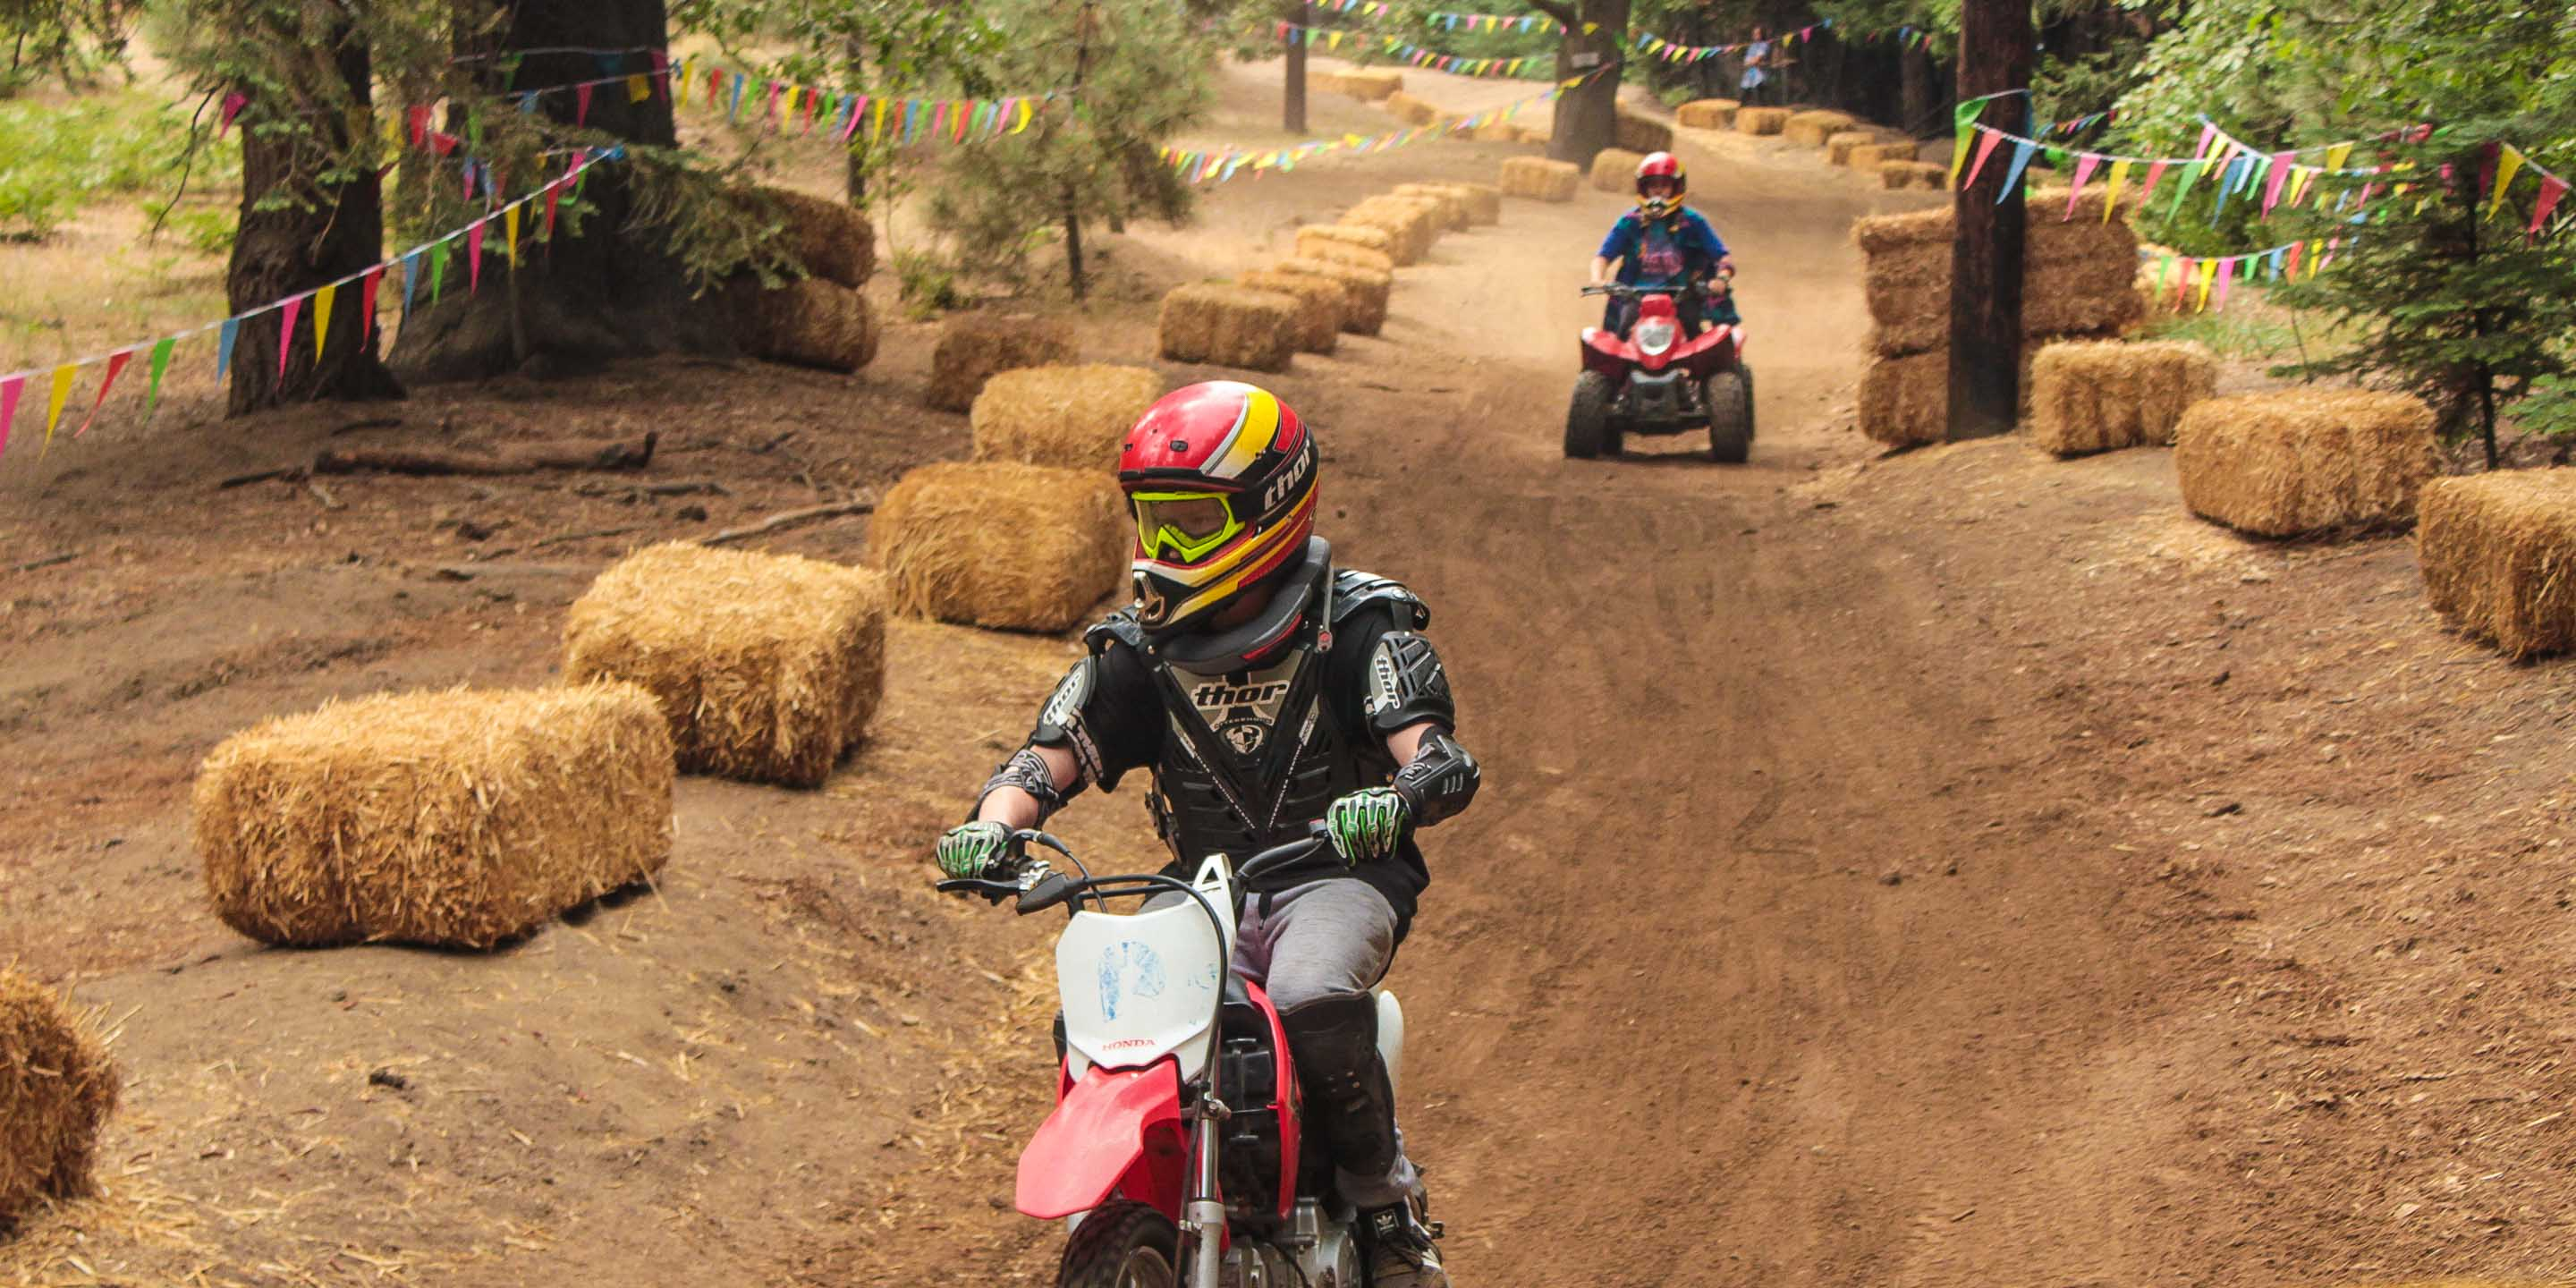 Custom dirt track with ATV and dirt bike